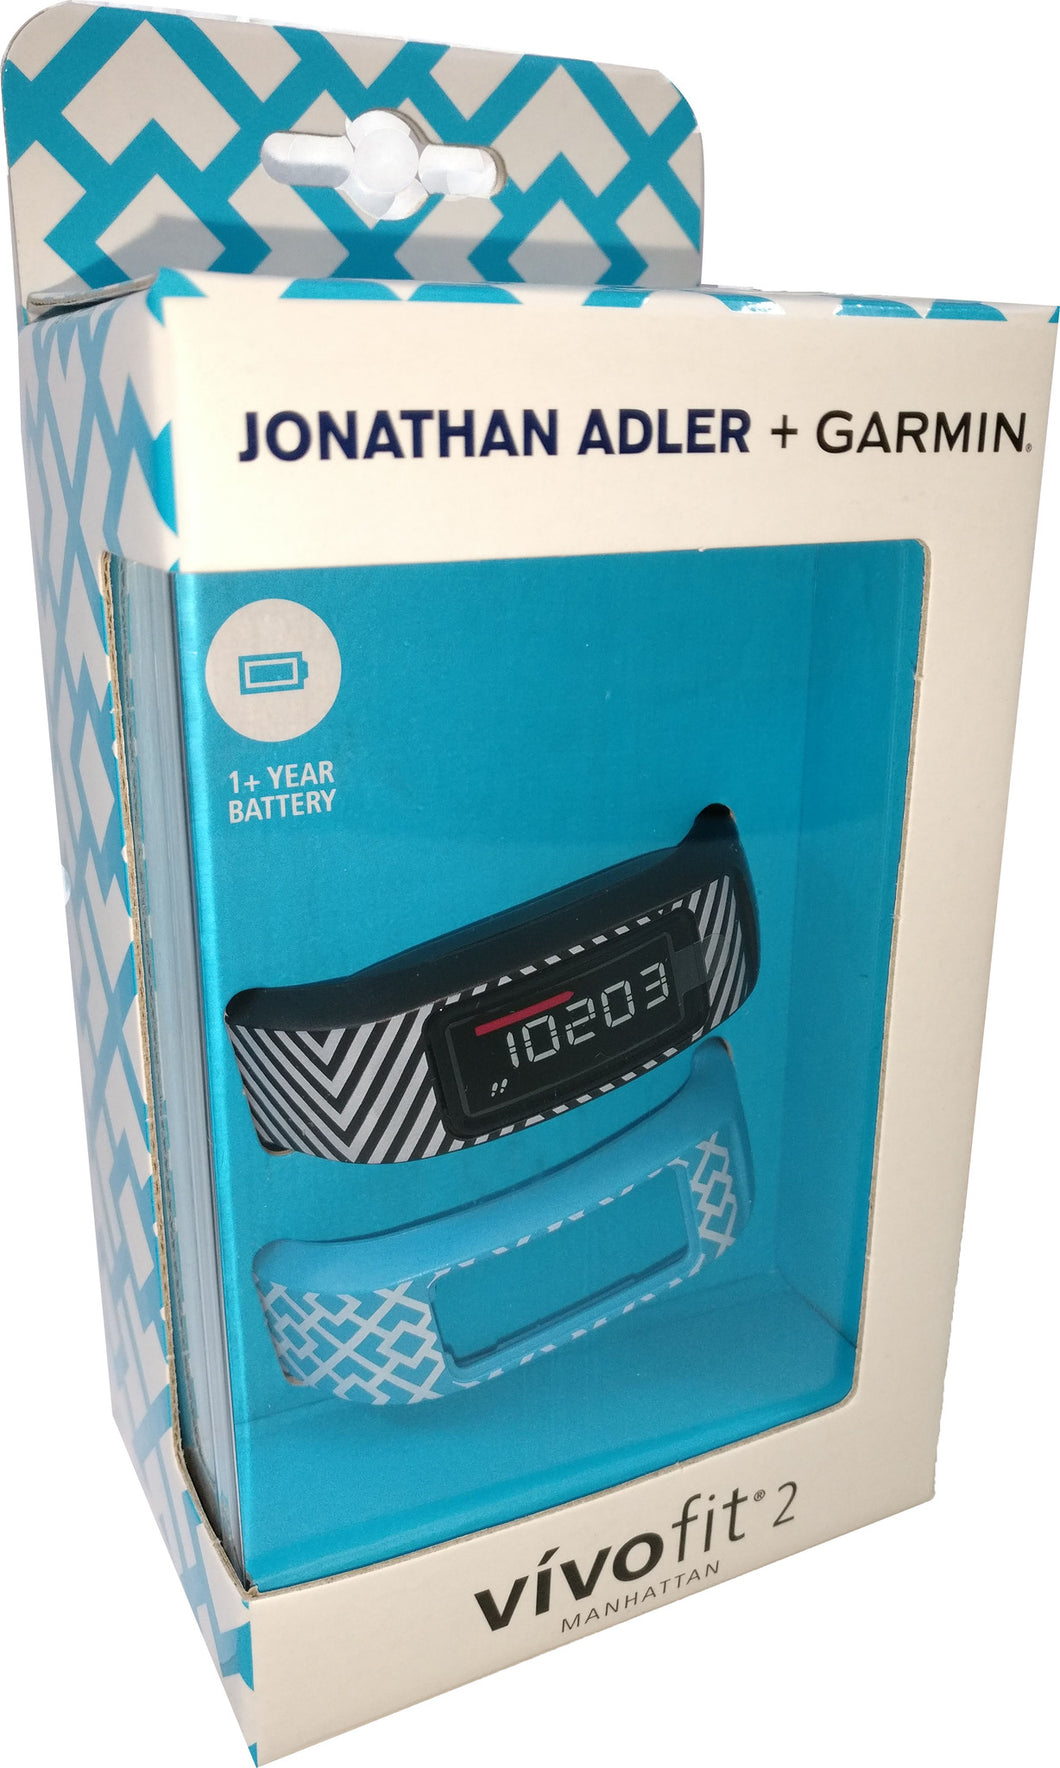 Vivofit 2 - Jonathan Adler + Garmin: The Manhattan Module Bundle